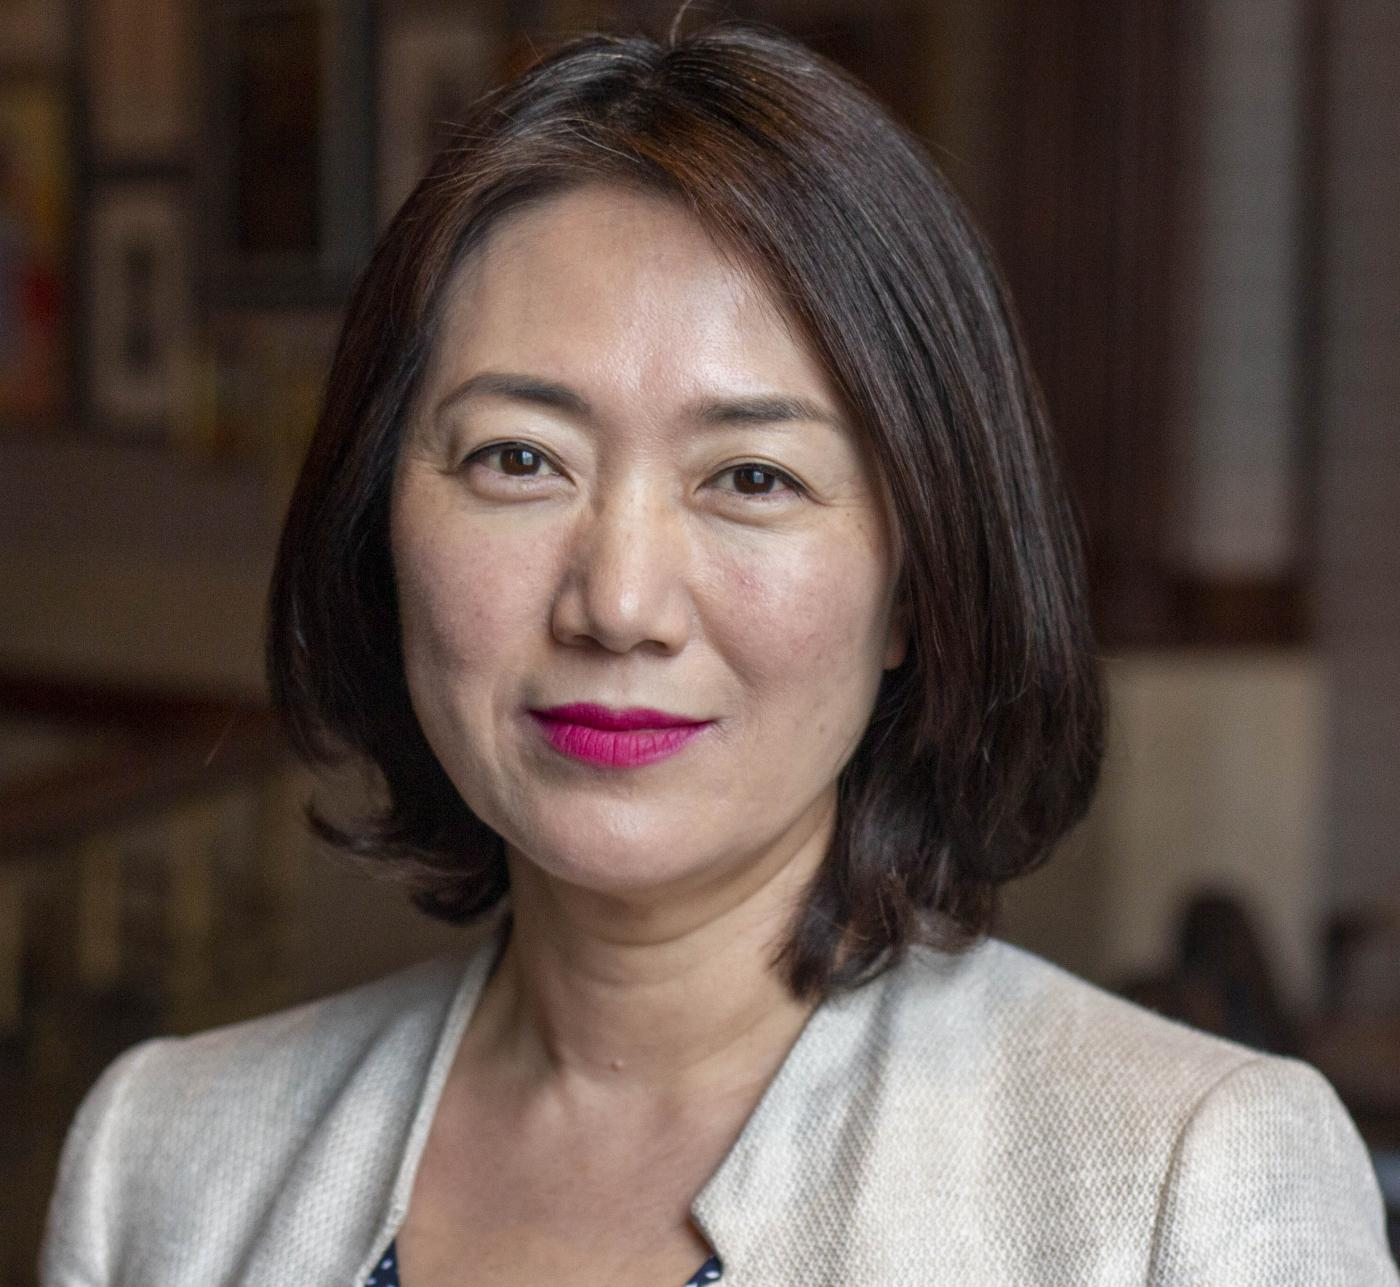 Head shot image of board member Min Jung Kim; she is smiling and wearing a ivory jacket.